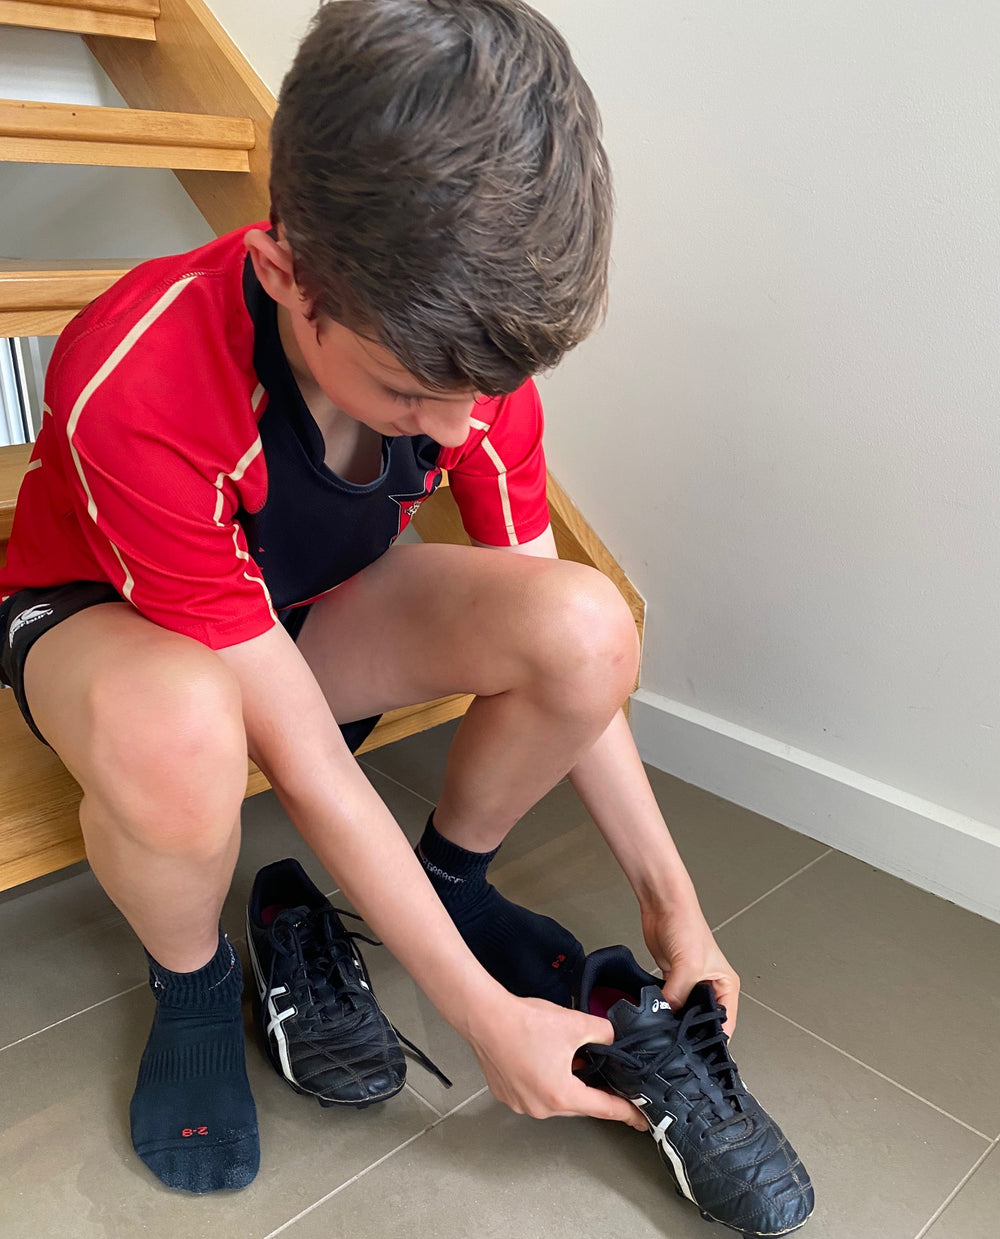 Reducing the Risk of Injury in Kids Returning to Sport Post COVD-19